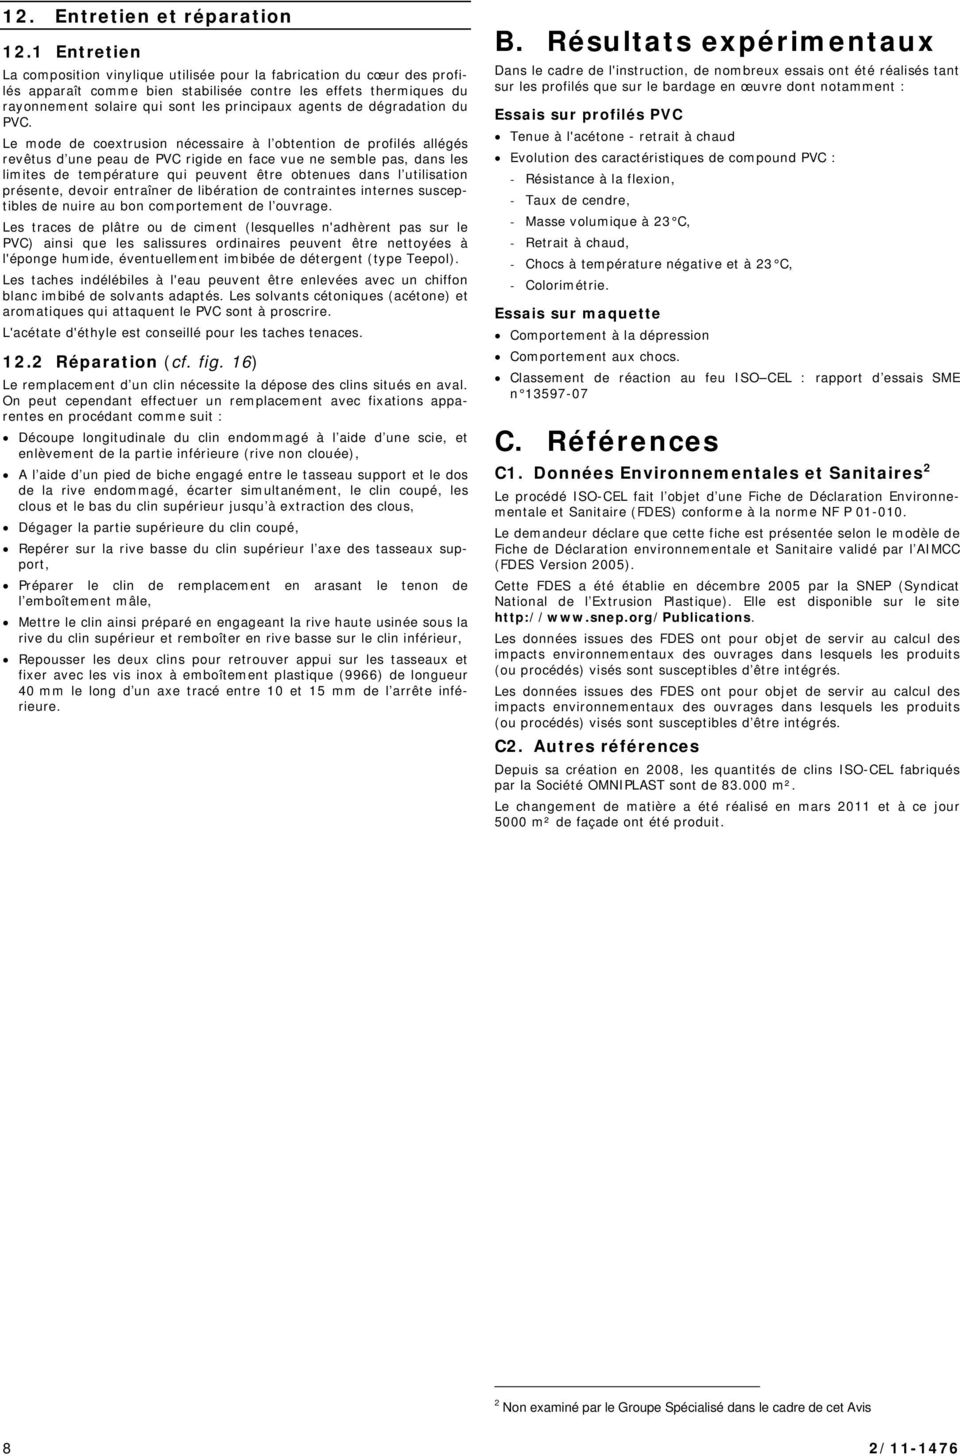 agents de dégradation du PVC.